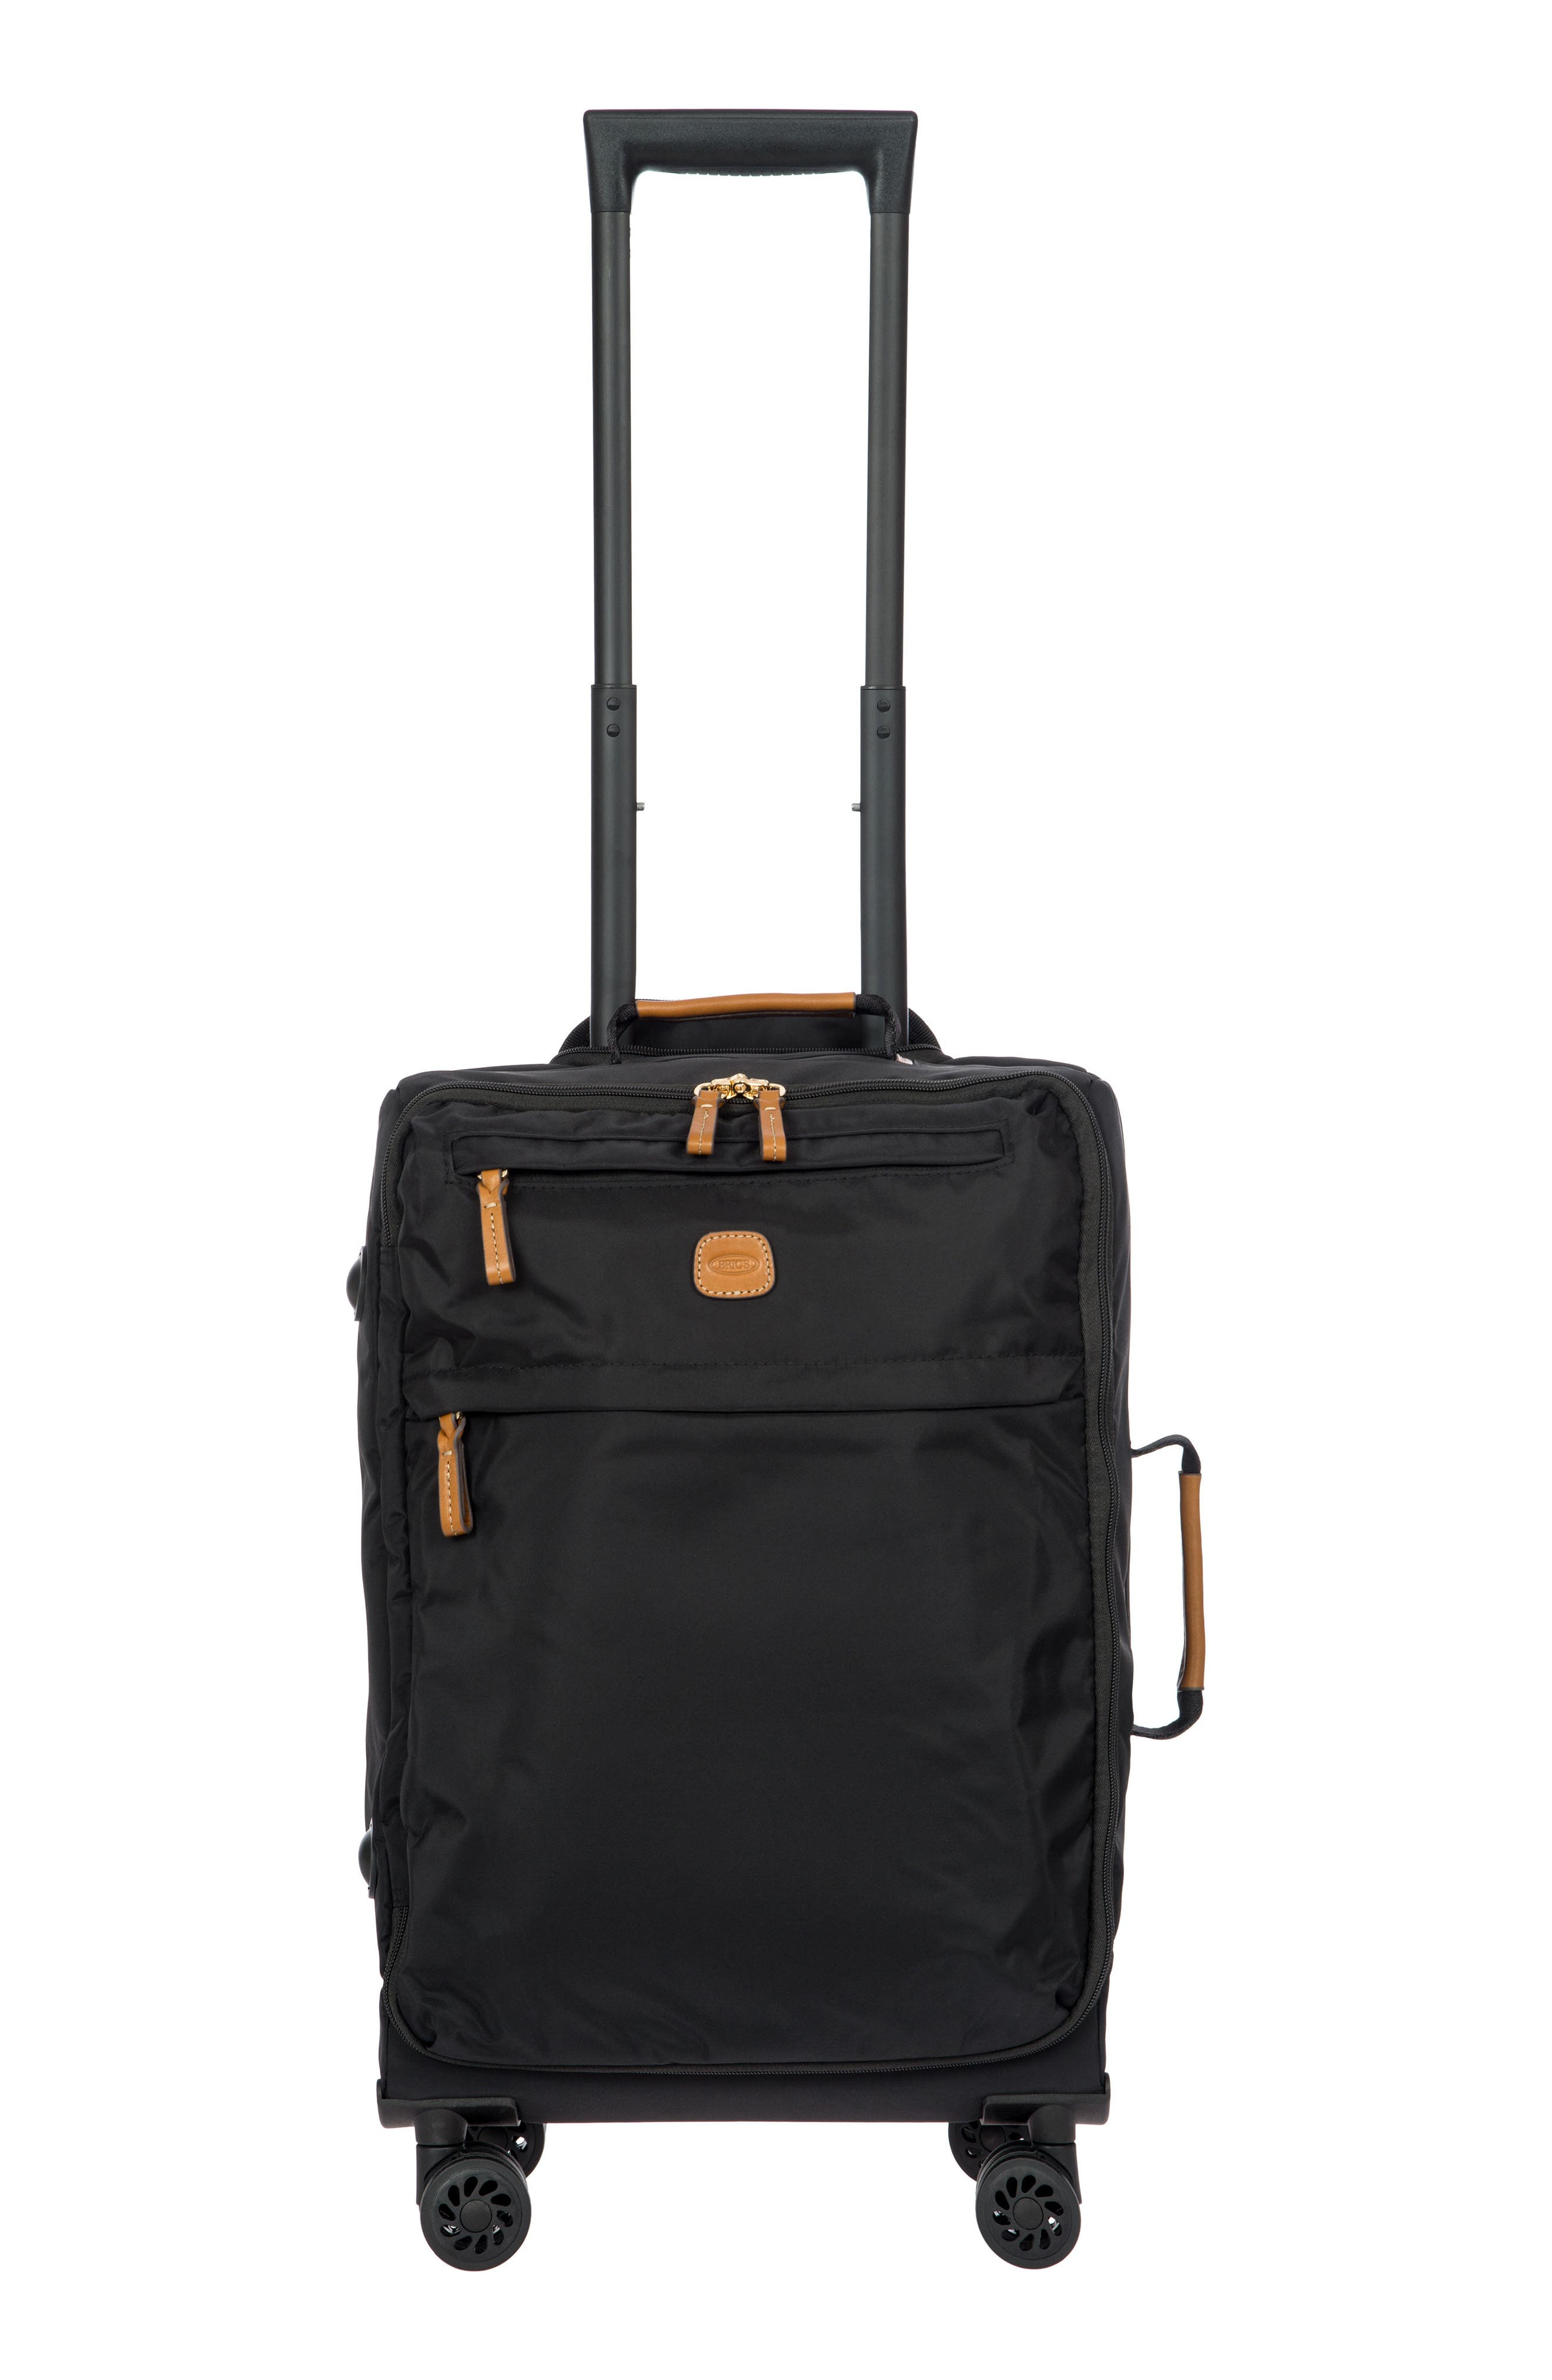 Alternate Image 1 Selected - Bric's X-Bag 21 Inch Spinner Carry-On